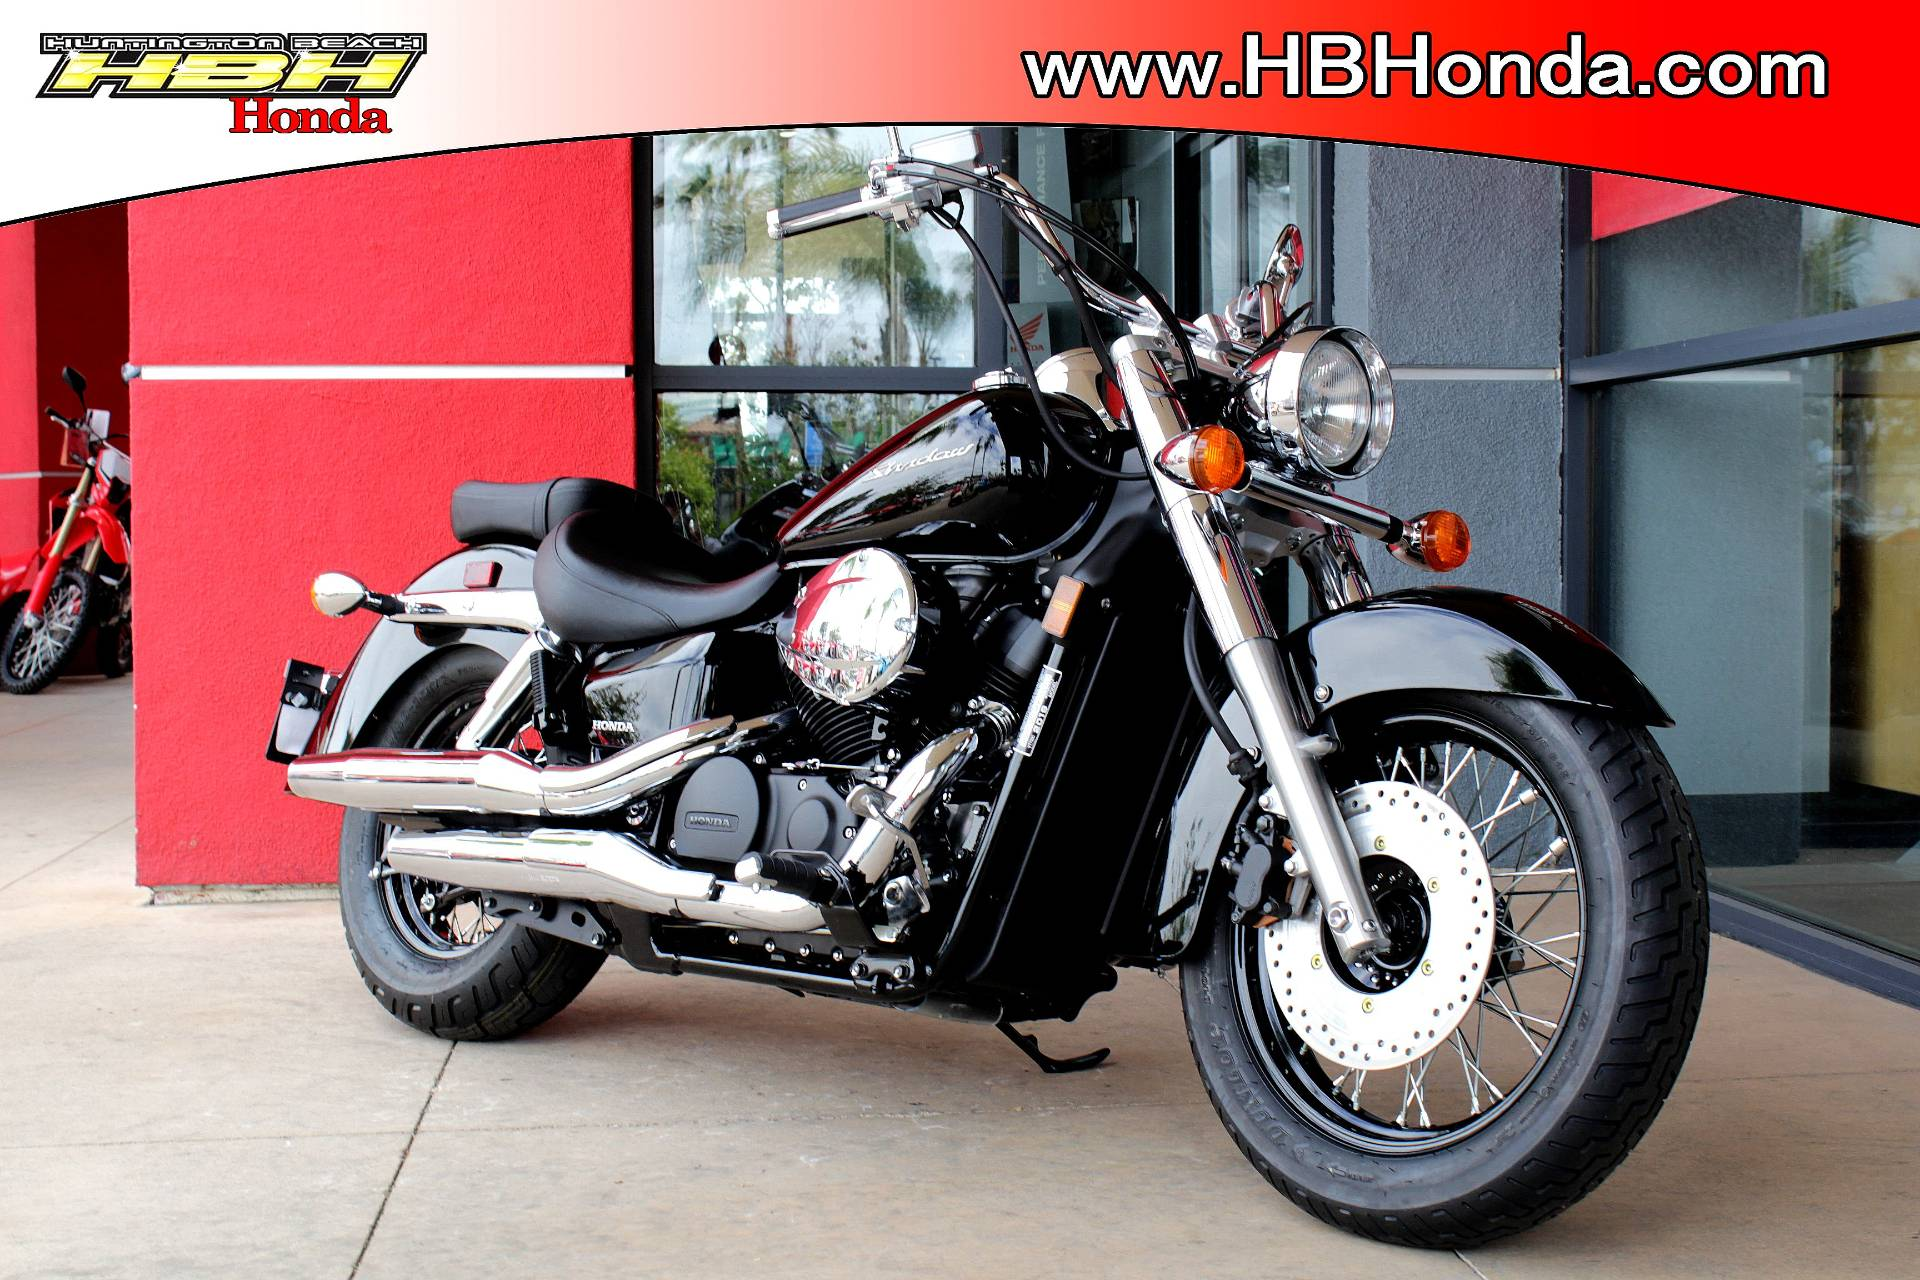 2019 Honda Shadow Aero 750 ABS in Huntington Beach, California - Photo 2